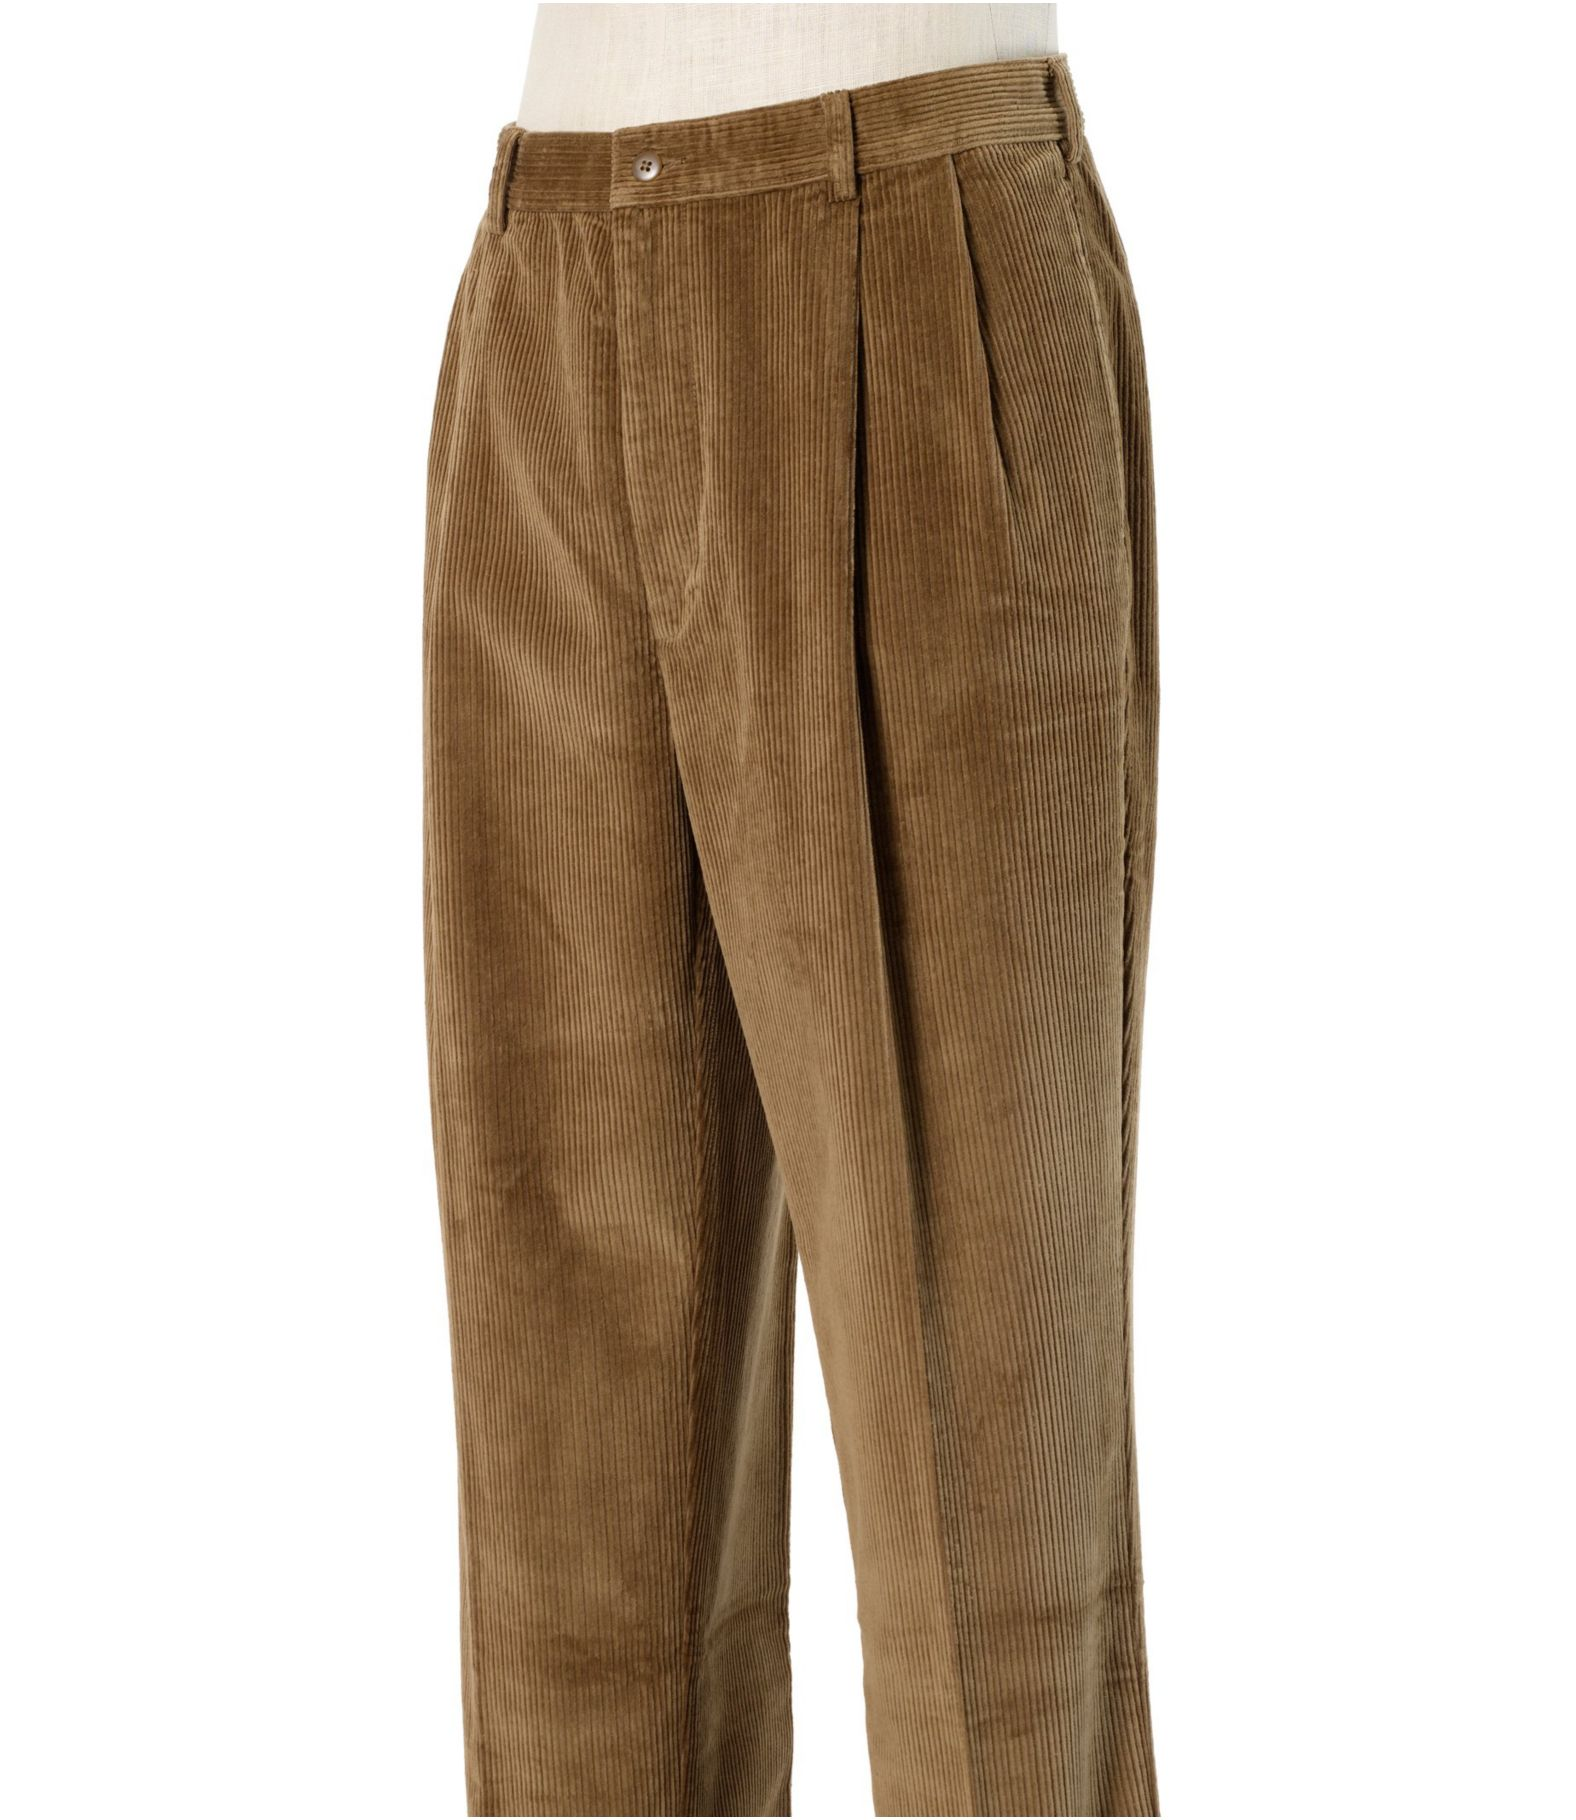 Colorfast Casual Corduroy Pleated Front Pants - | Jos A Bank